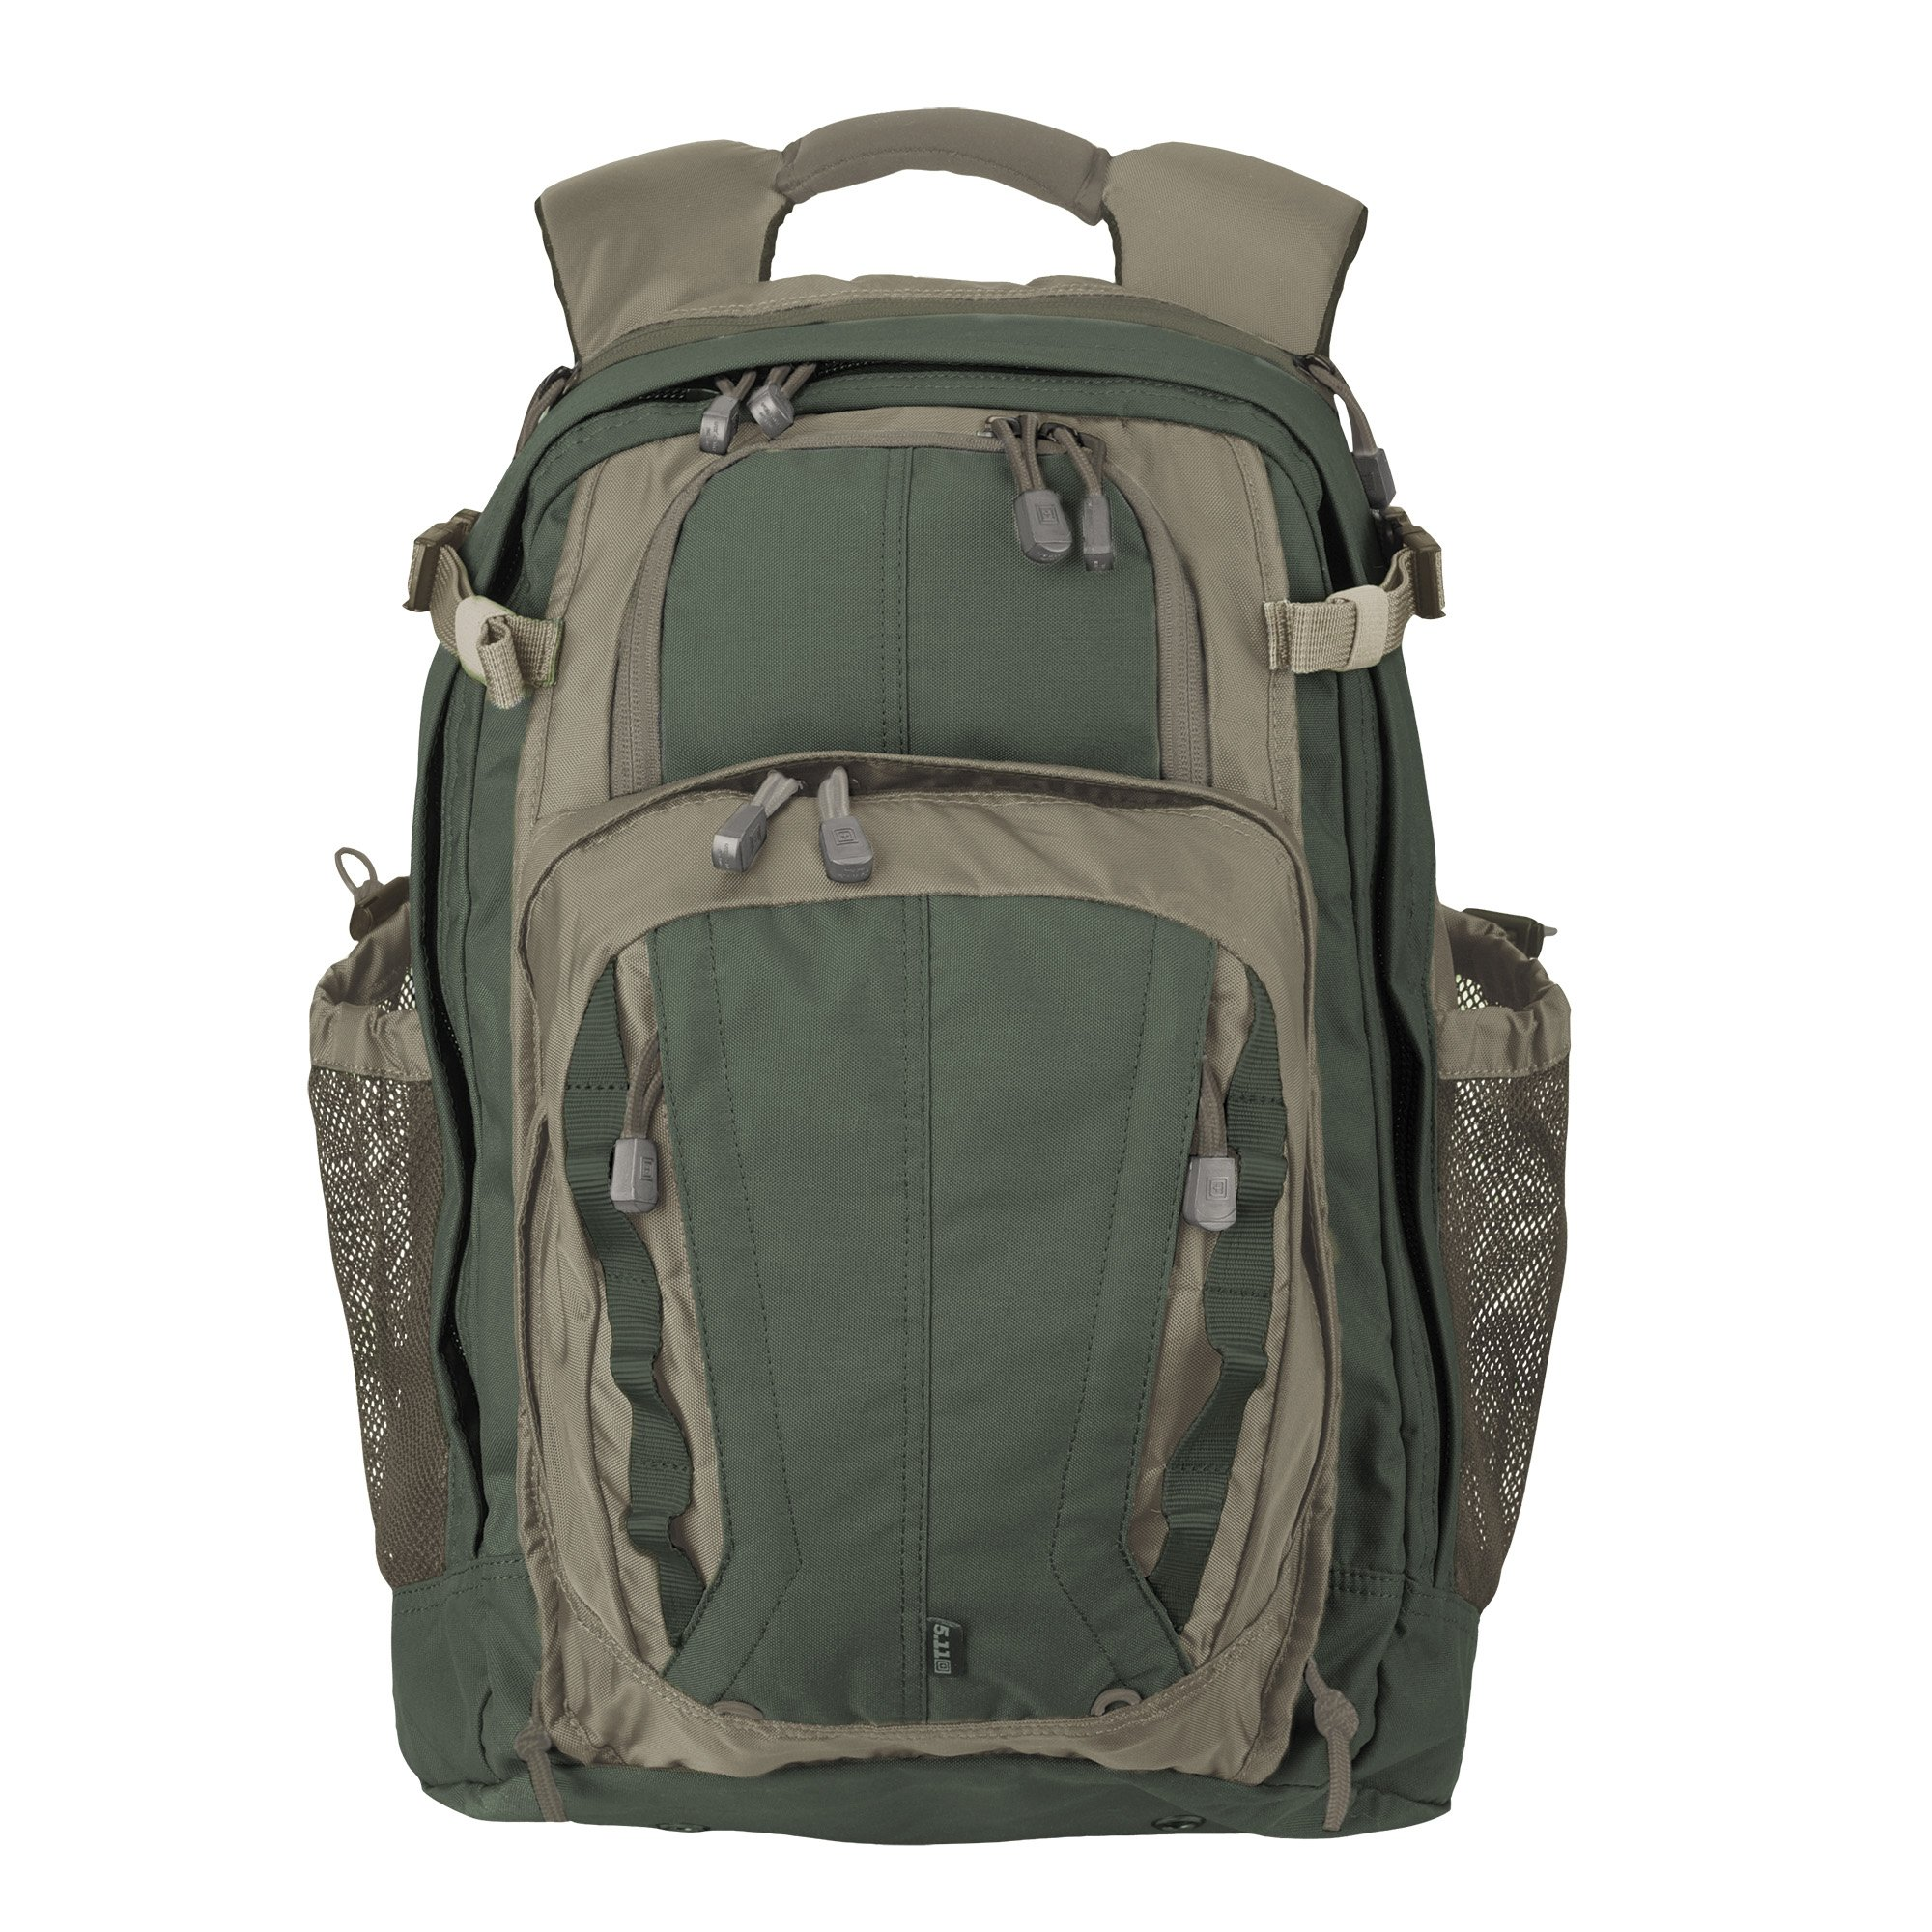 Balo 5.11 Tactical COVRT18™ 25L – Foliage